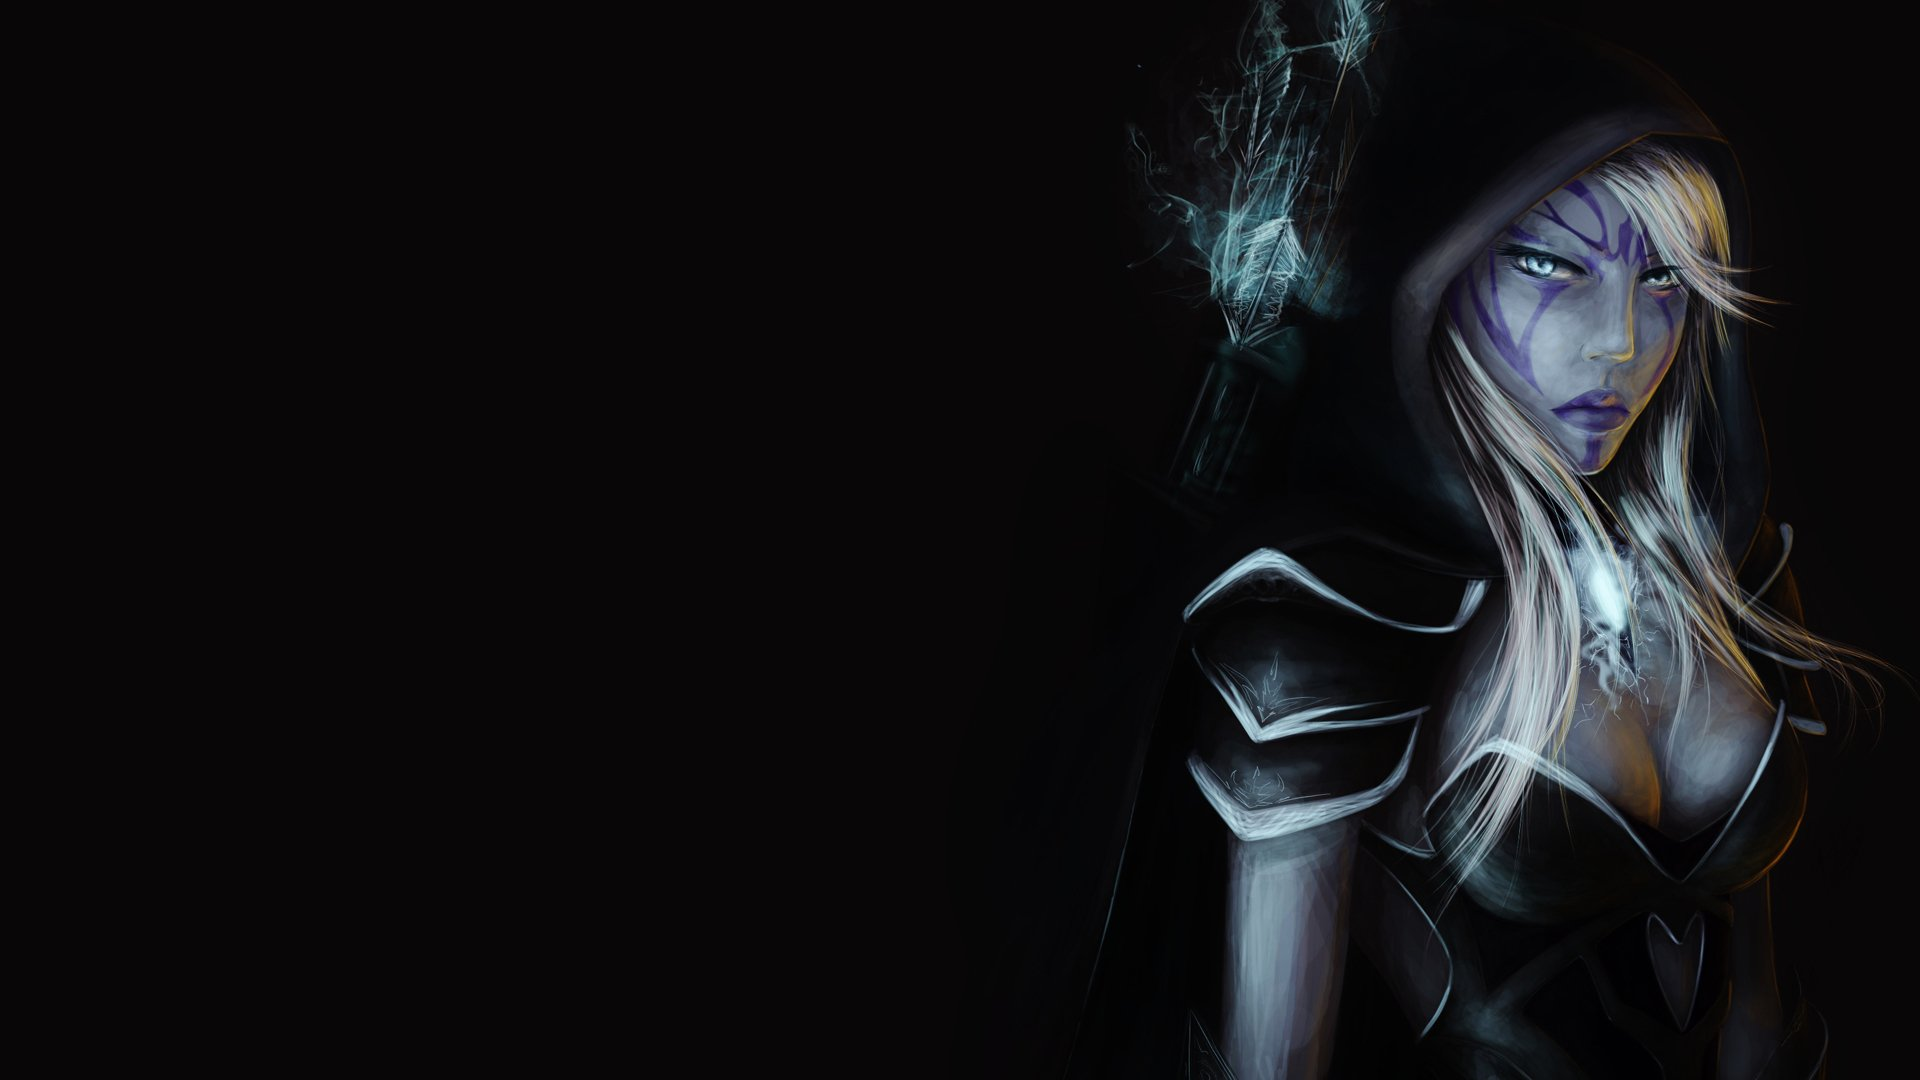 Dota 2 juggernaut hd wallpaper background id 387546